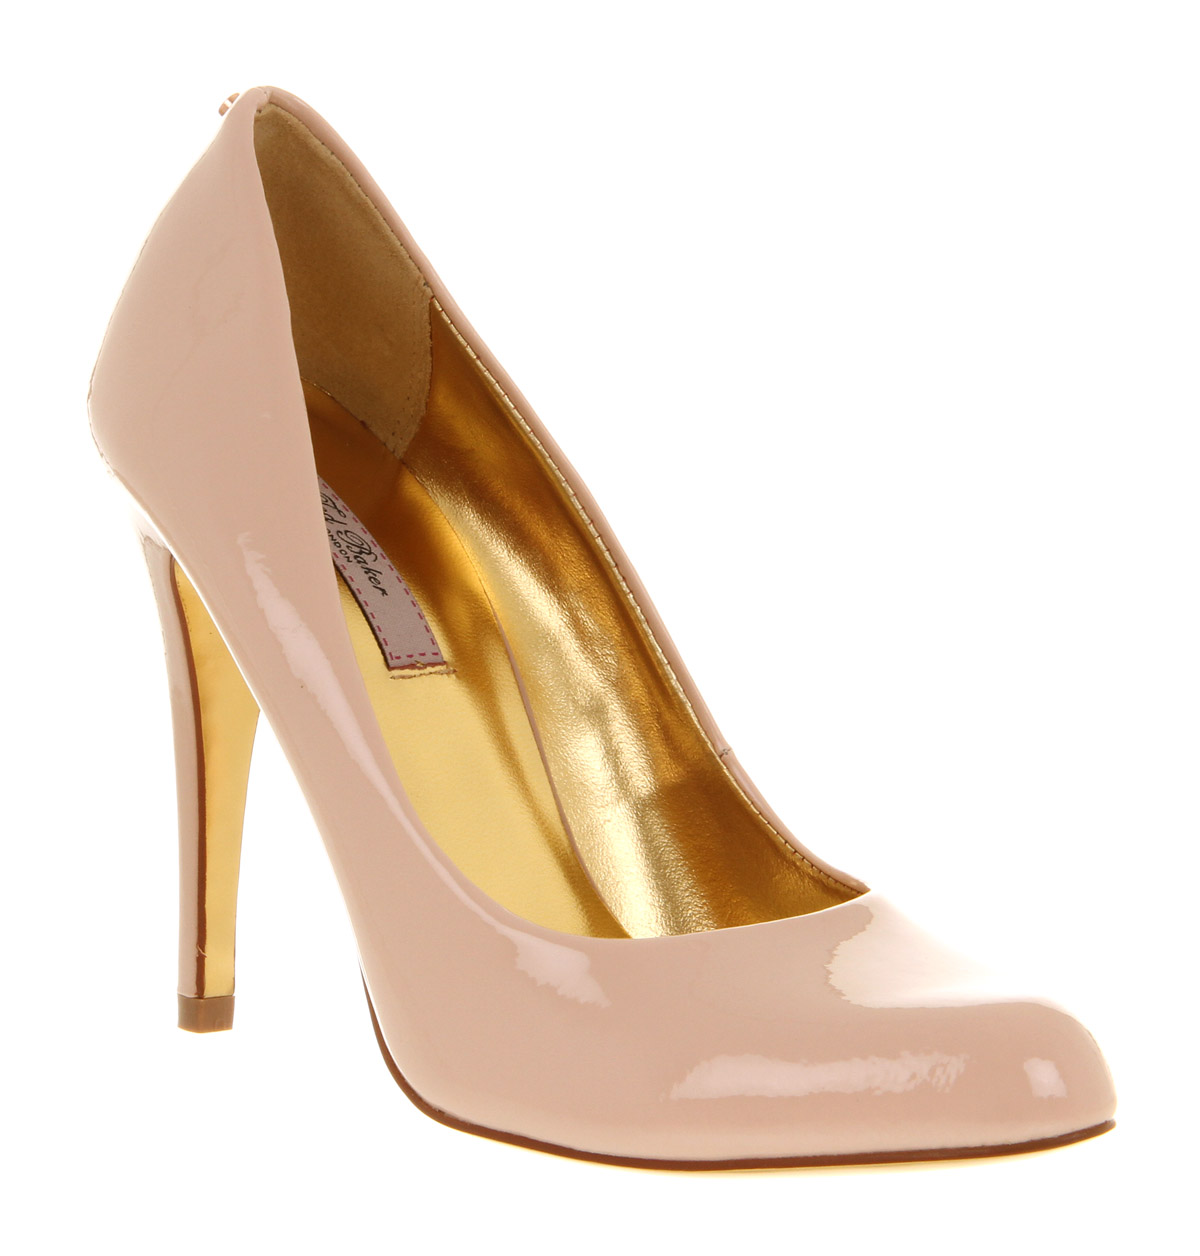 247e50208ba Womens Ted Baker Jaxine 2 Court Shoe Nude Patent Leather Heels